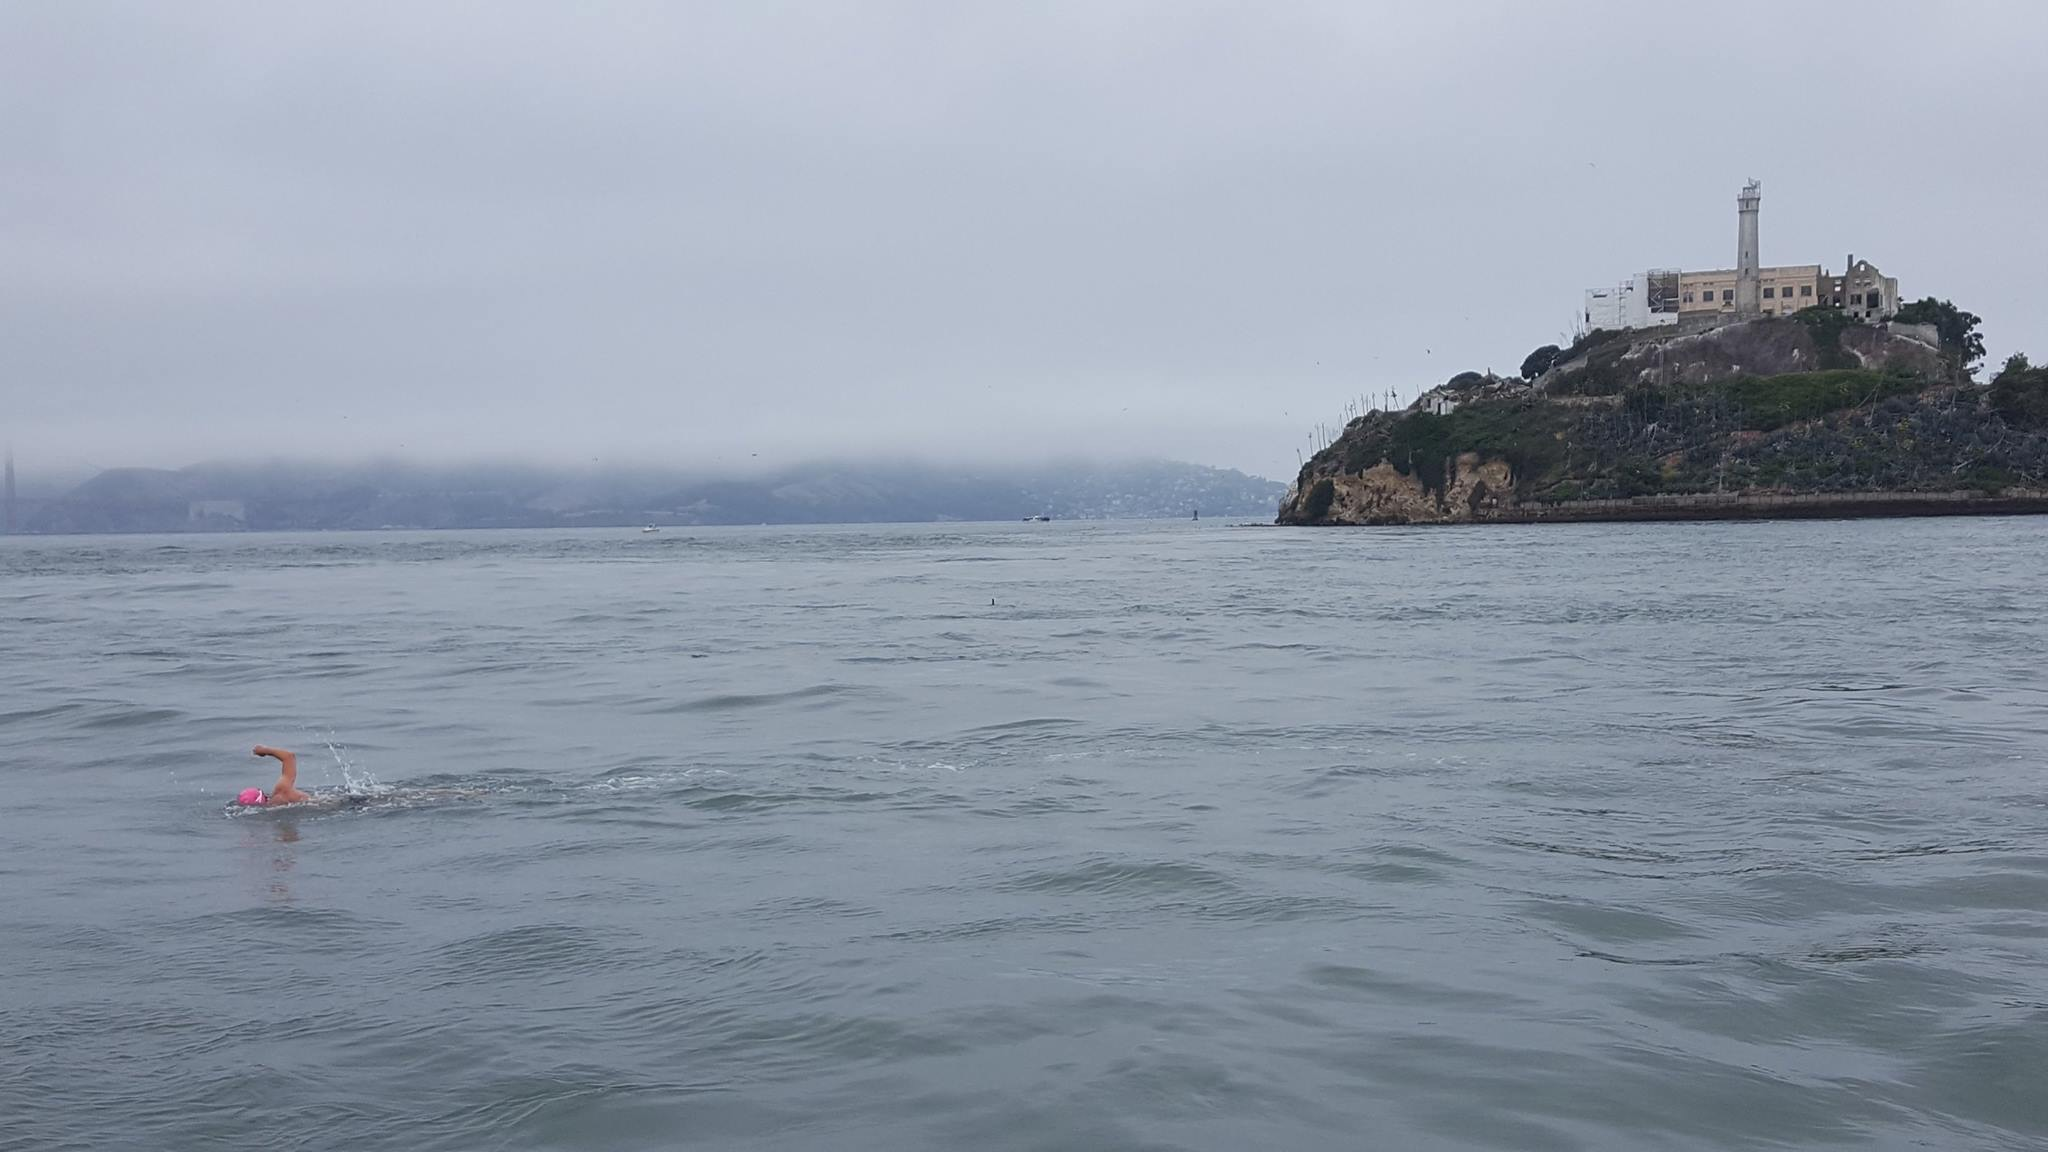 Setting off from Alcatraz with the fog descending